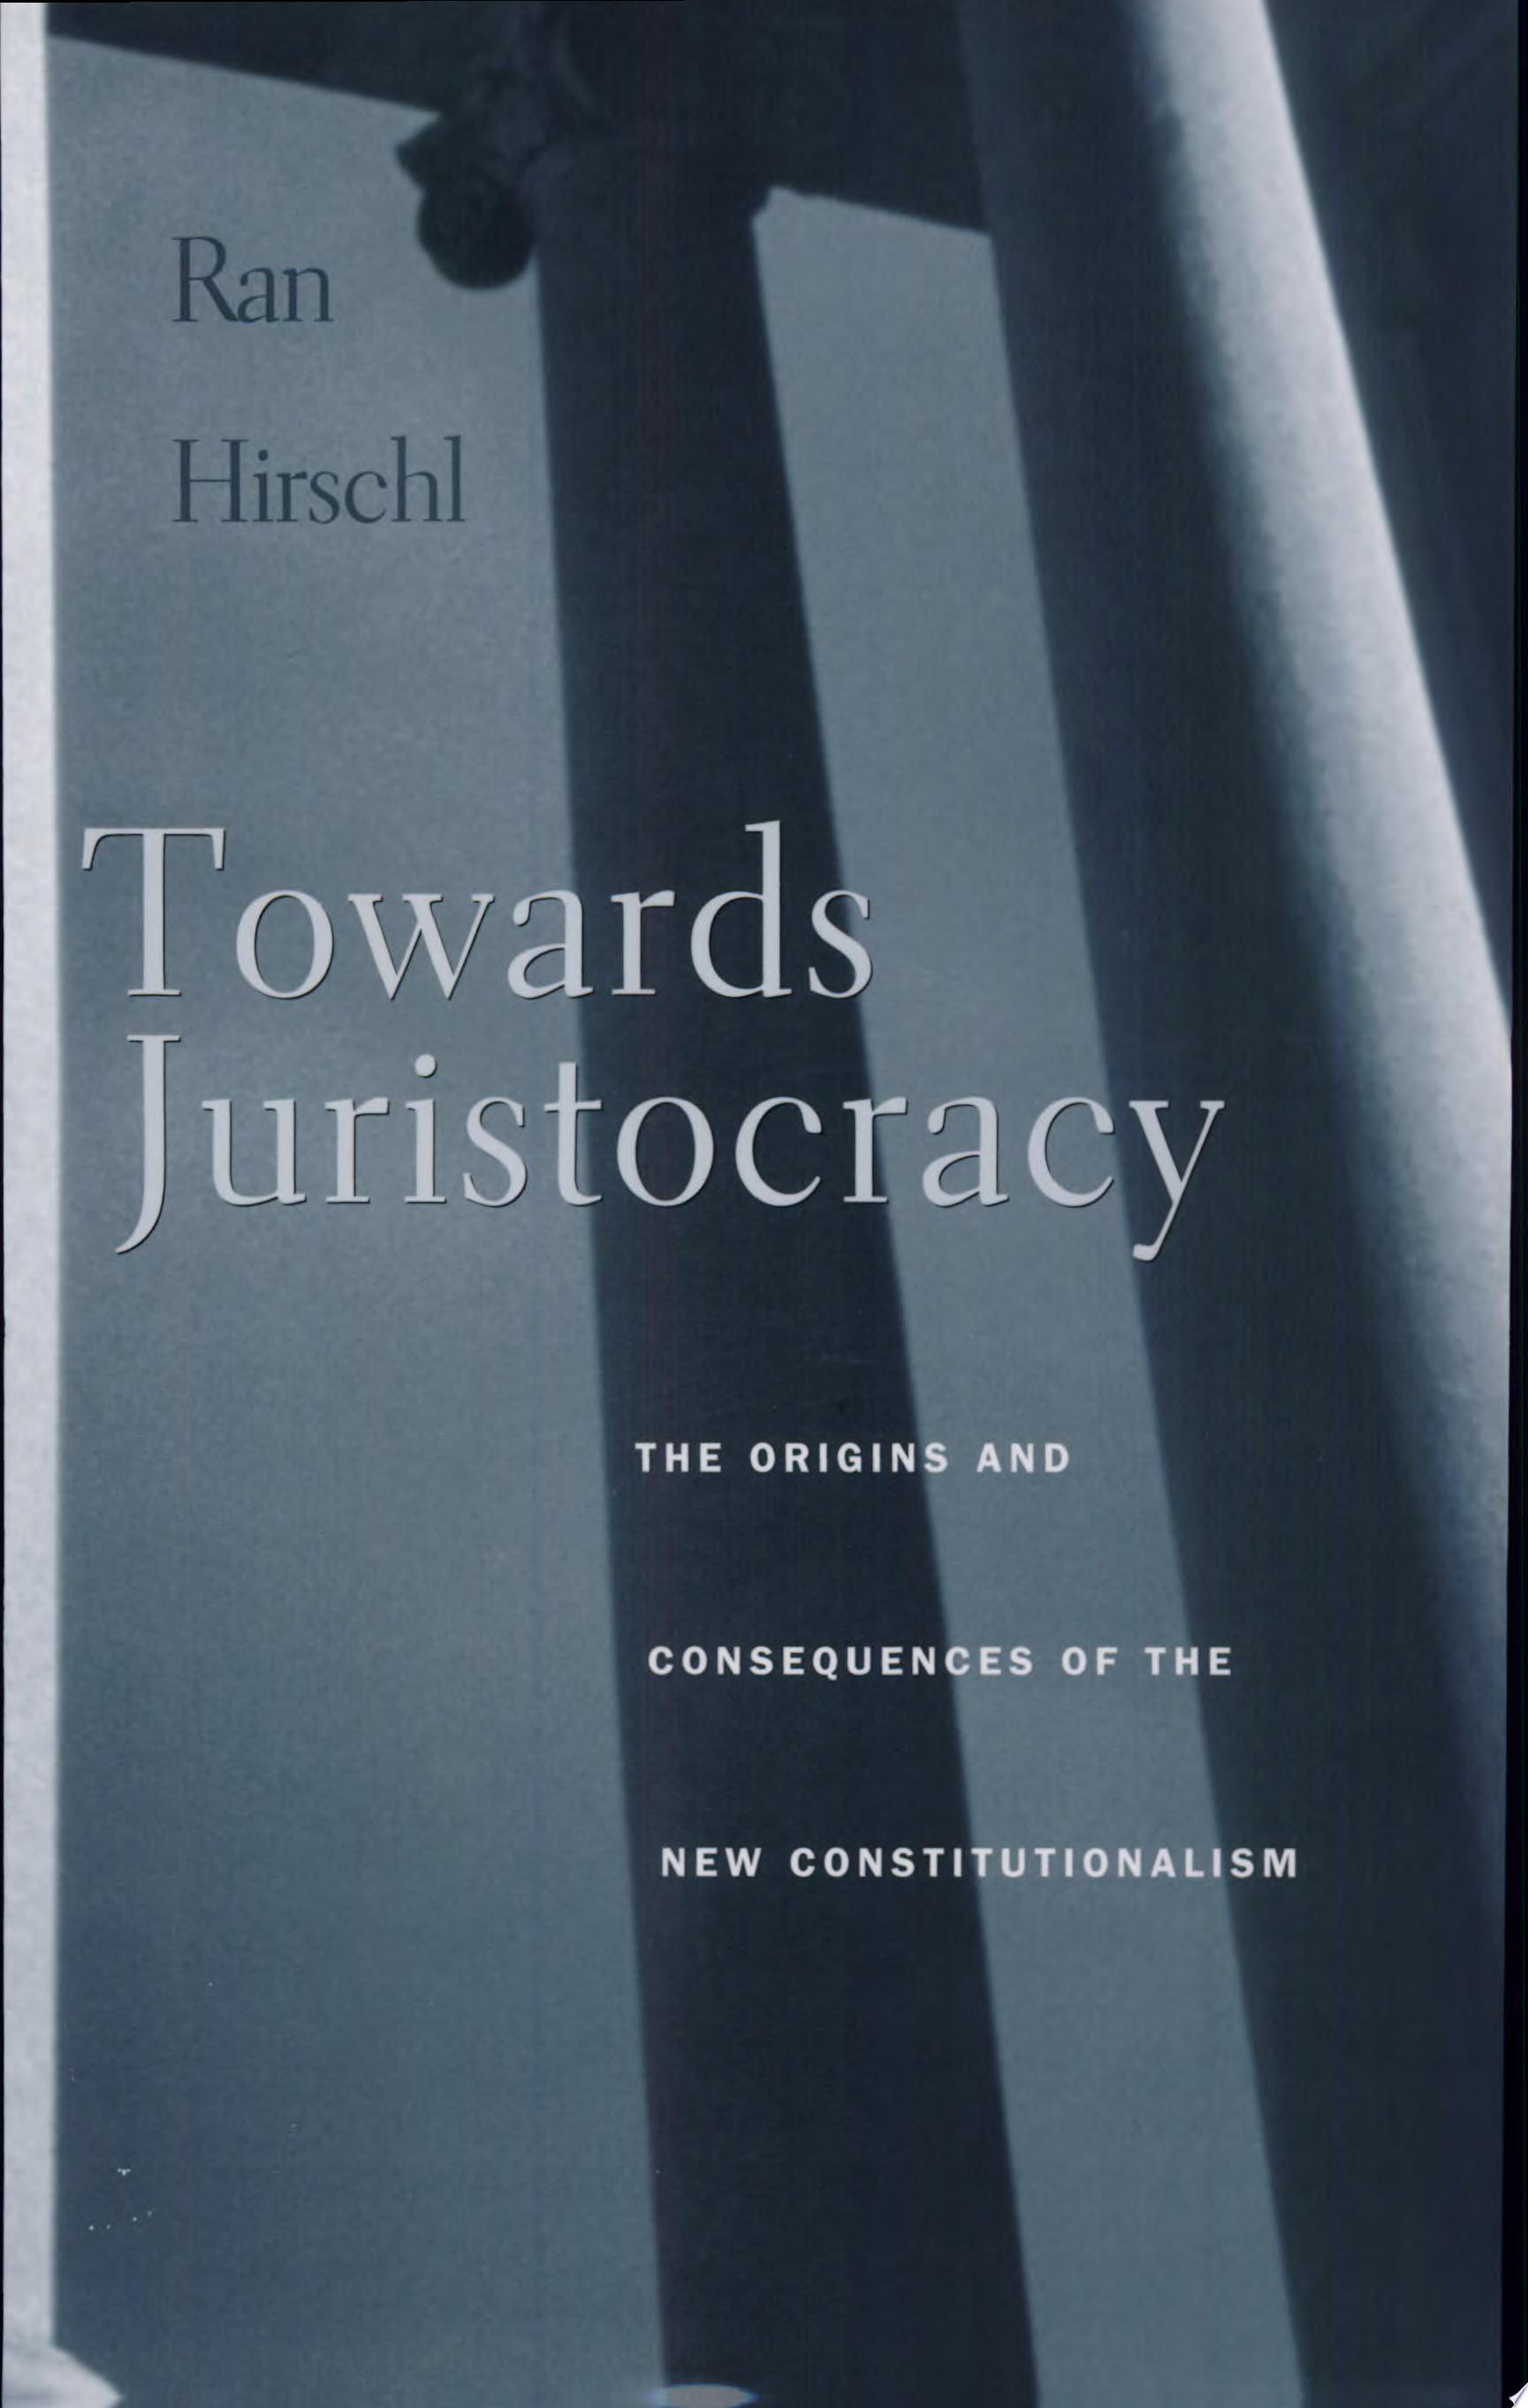 Towards Juristocracy